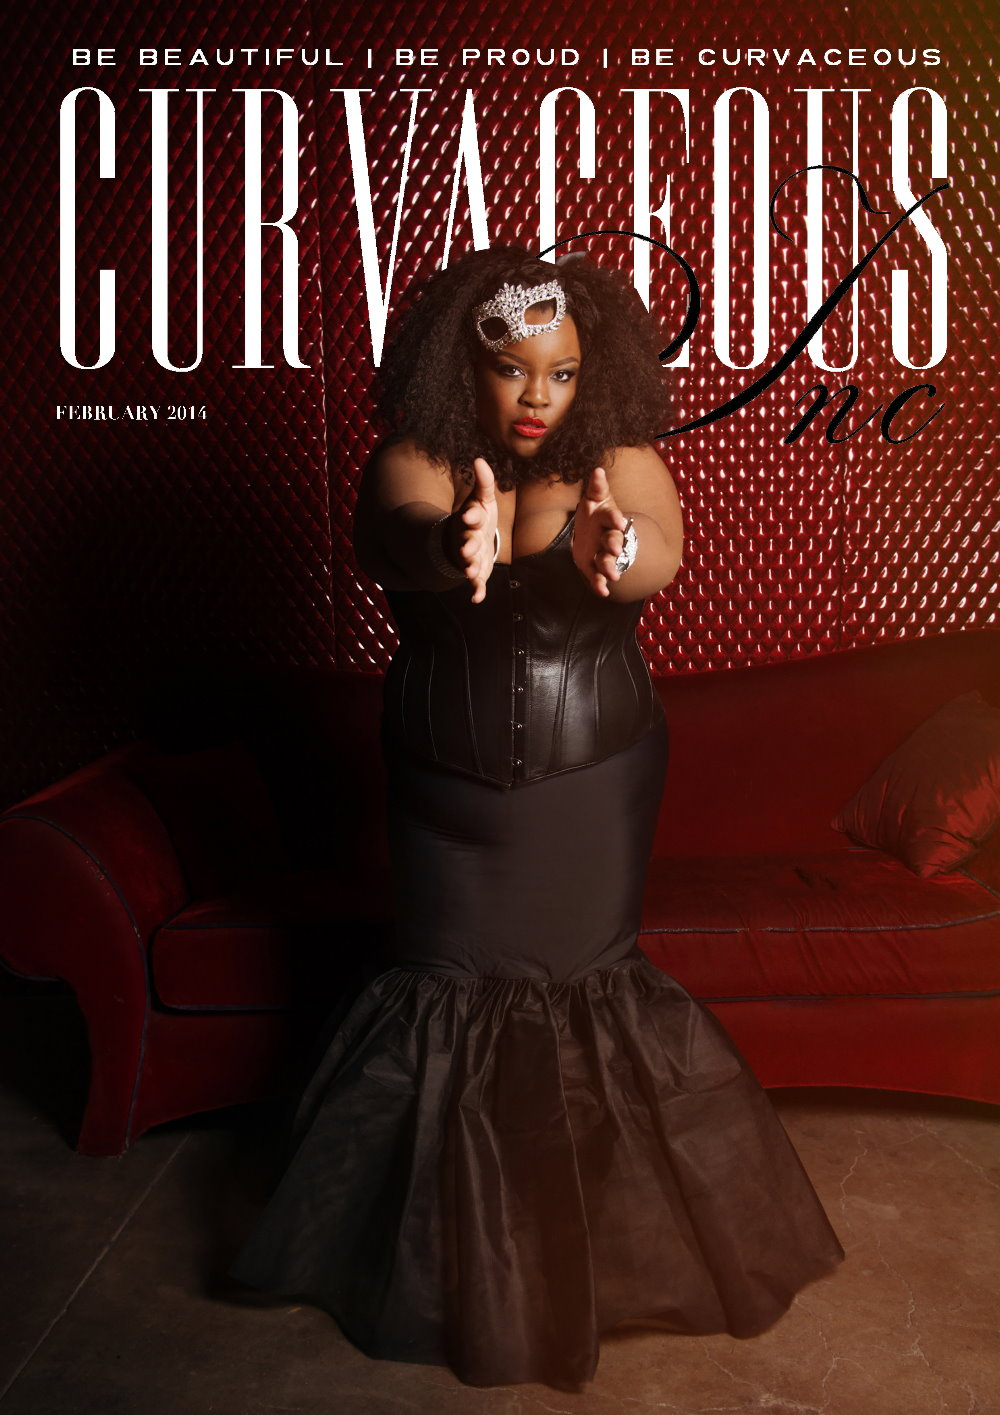 Curvaceous Mag Cover